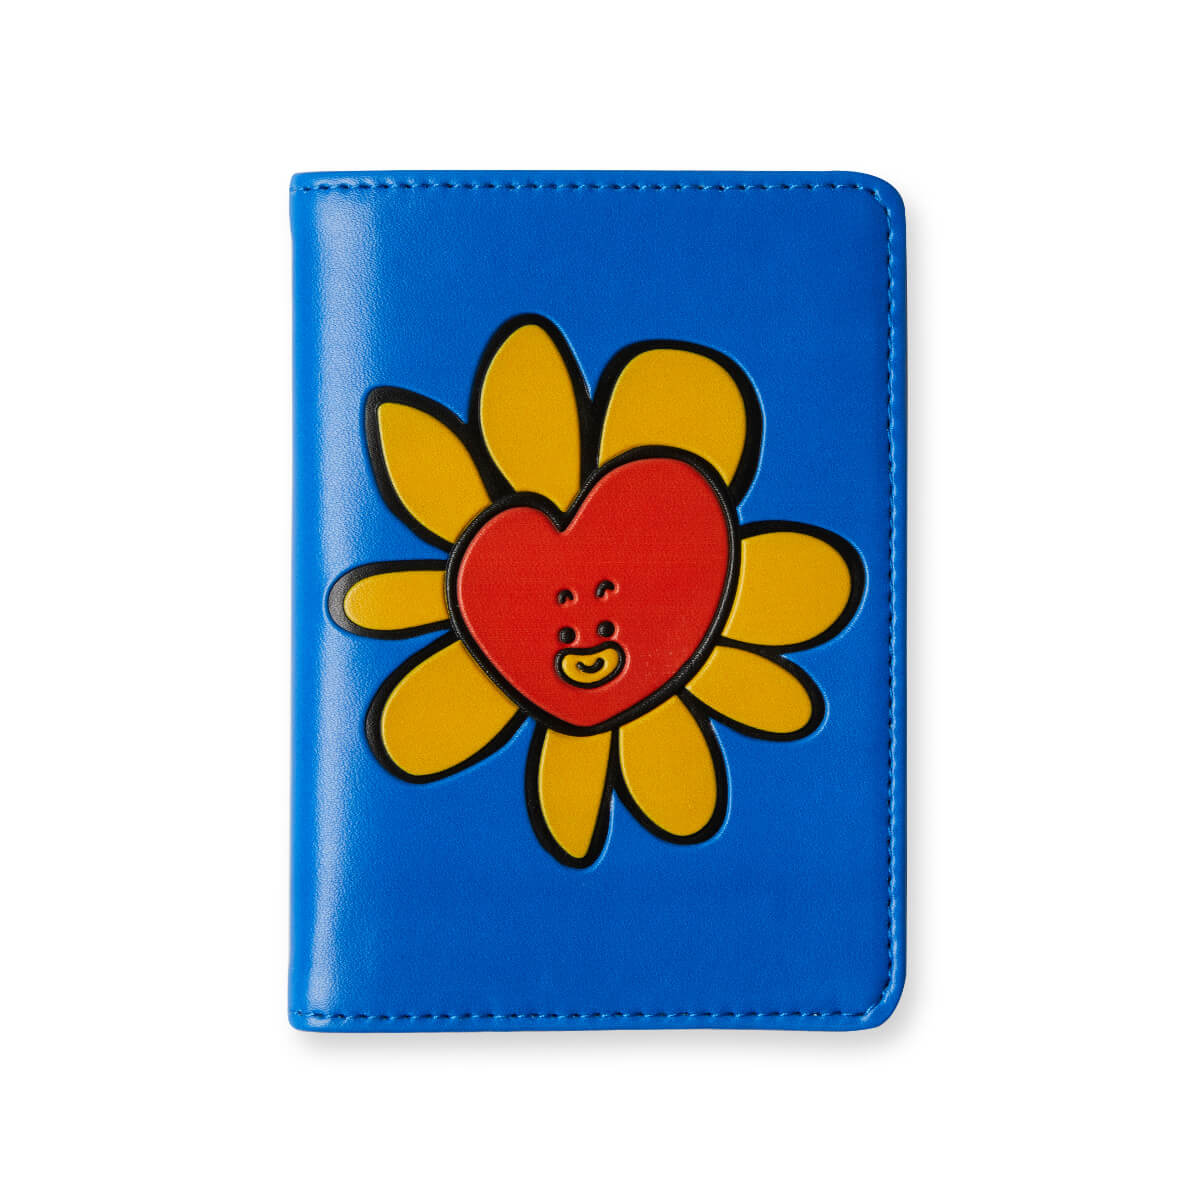 BT21 TATA Flower Graphic Passport Cover